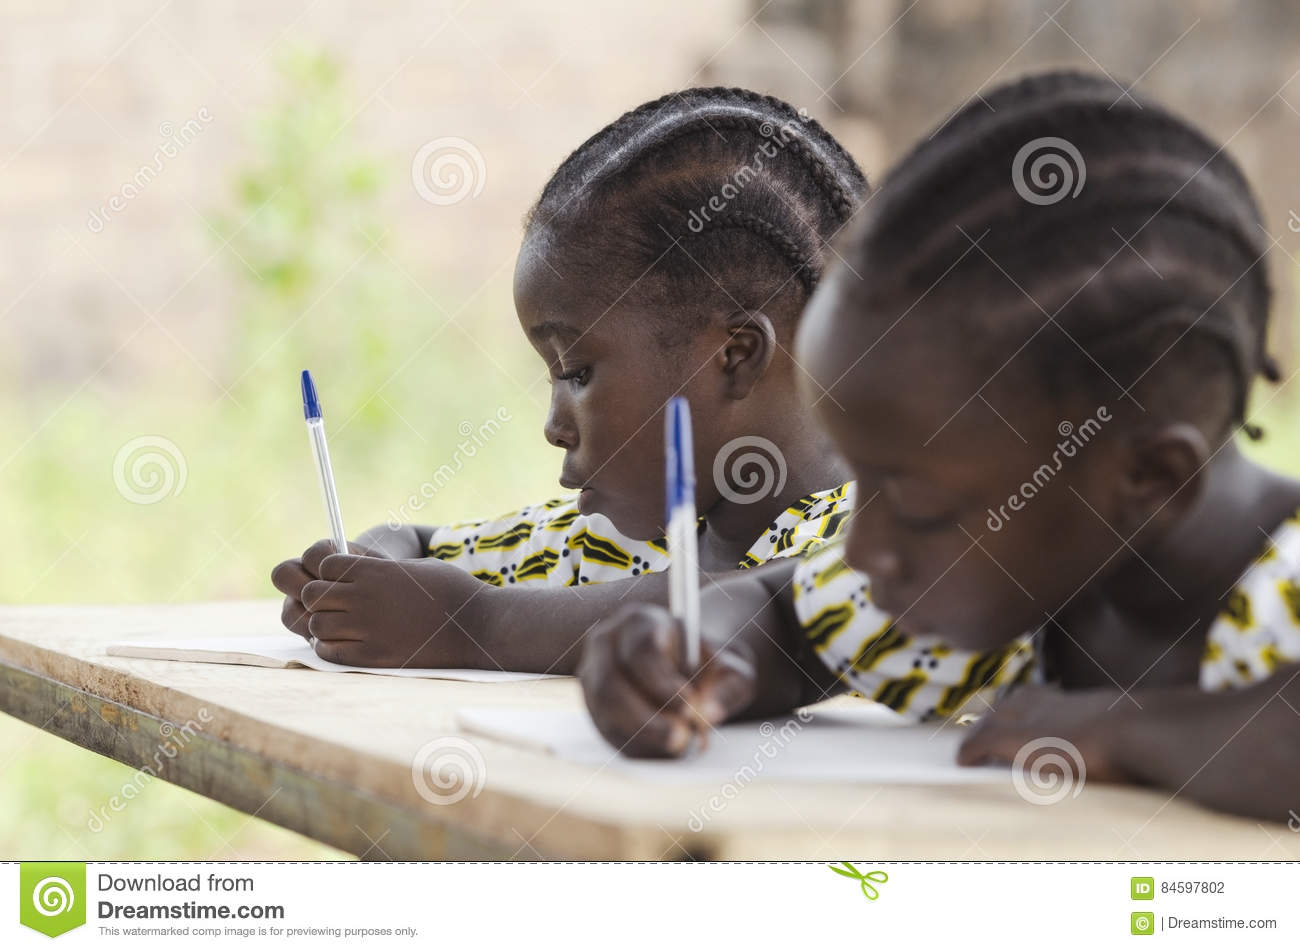 african children at school doing homework african ethnicity stu african children at school doing homework african ethnicity stu stock photo image 84597802